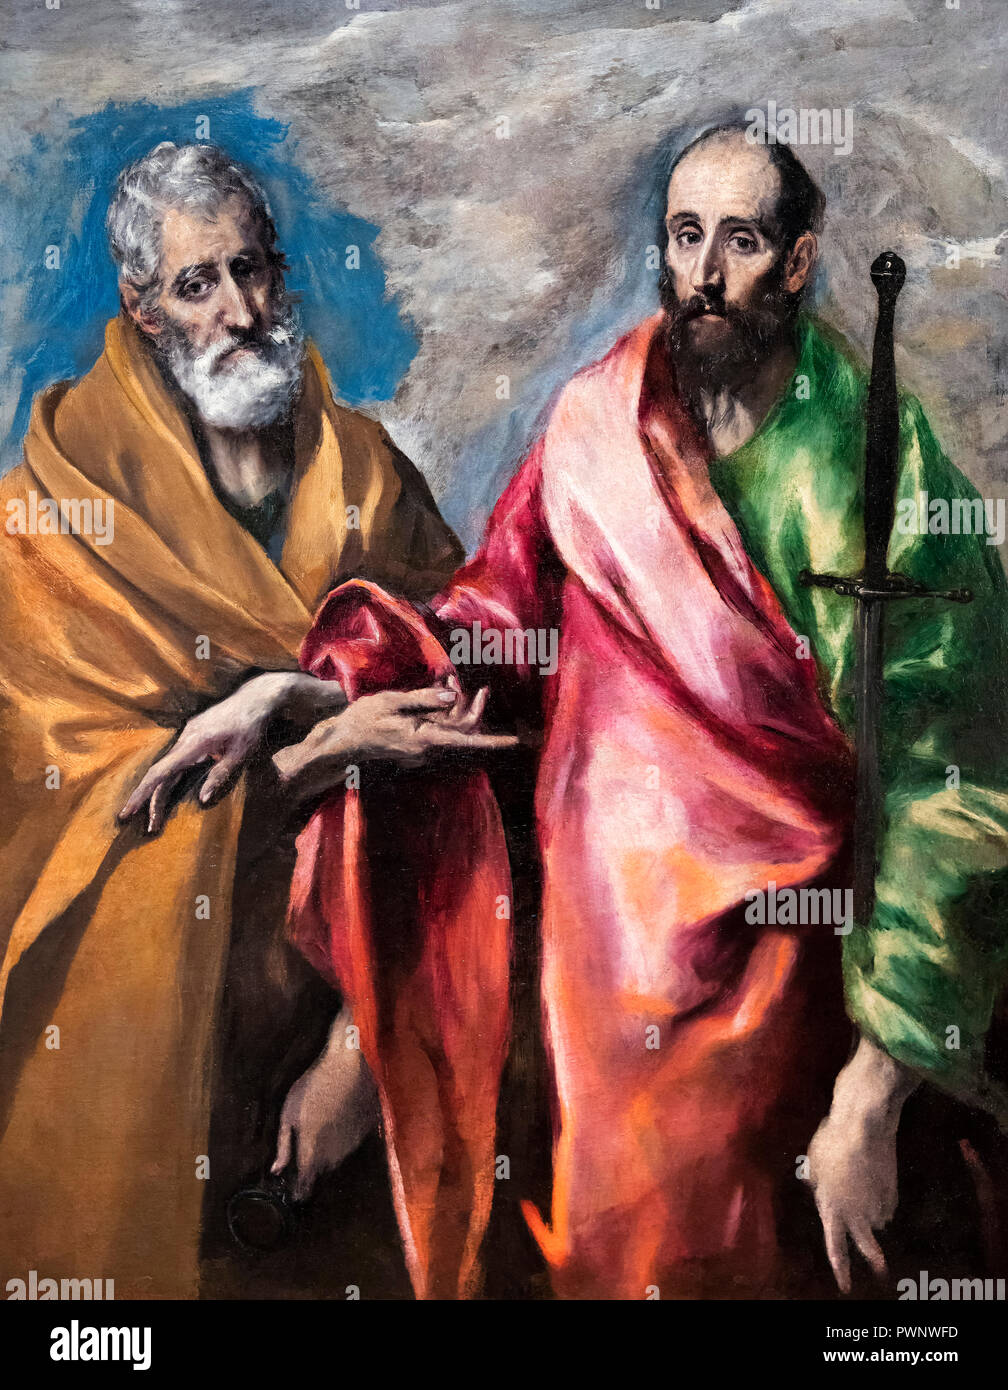 St Peter and St Paul by El Greco (Domenikos Theotokopoulos, 1541-1614), oil on canvas, c.1590-1600 - Stock Image